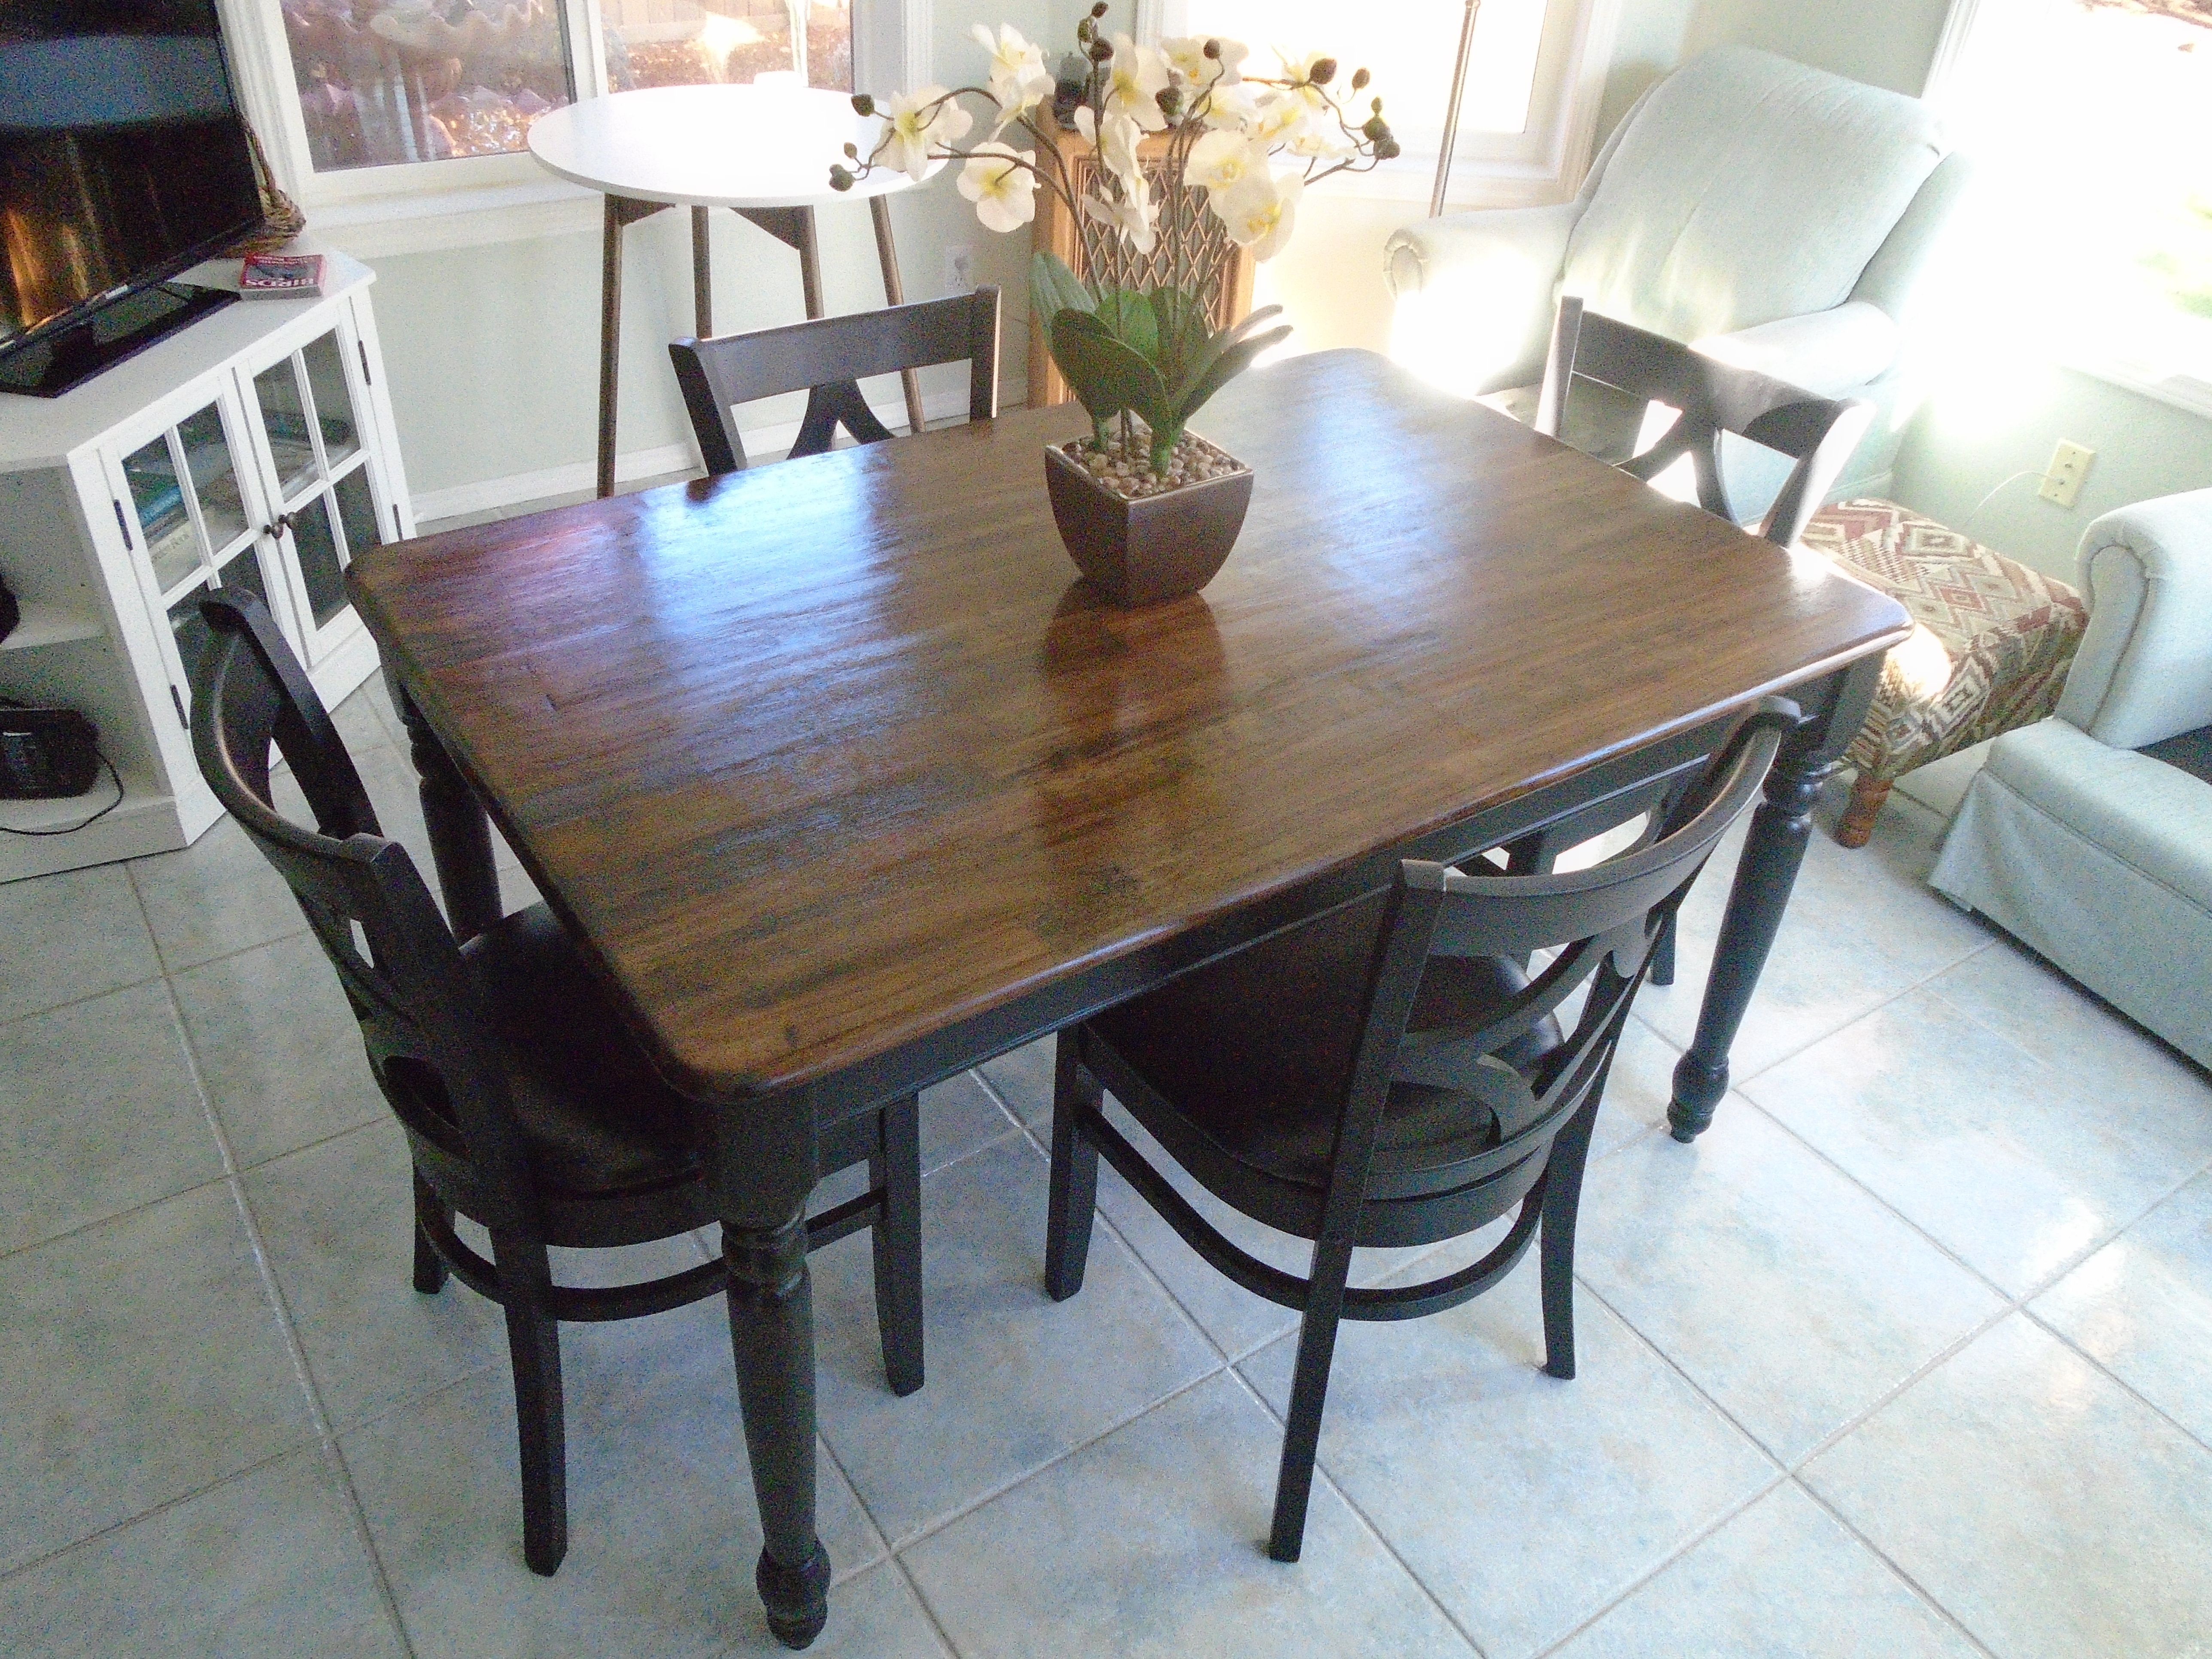 Table painted farmhouse table and chairs - Rustic Farmhouse Table Brown Stained Top Black Painted Legs 4 Black Chairs Black